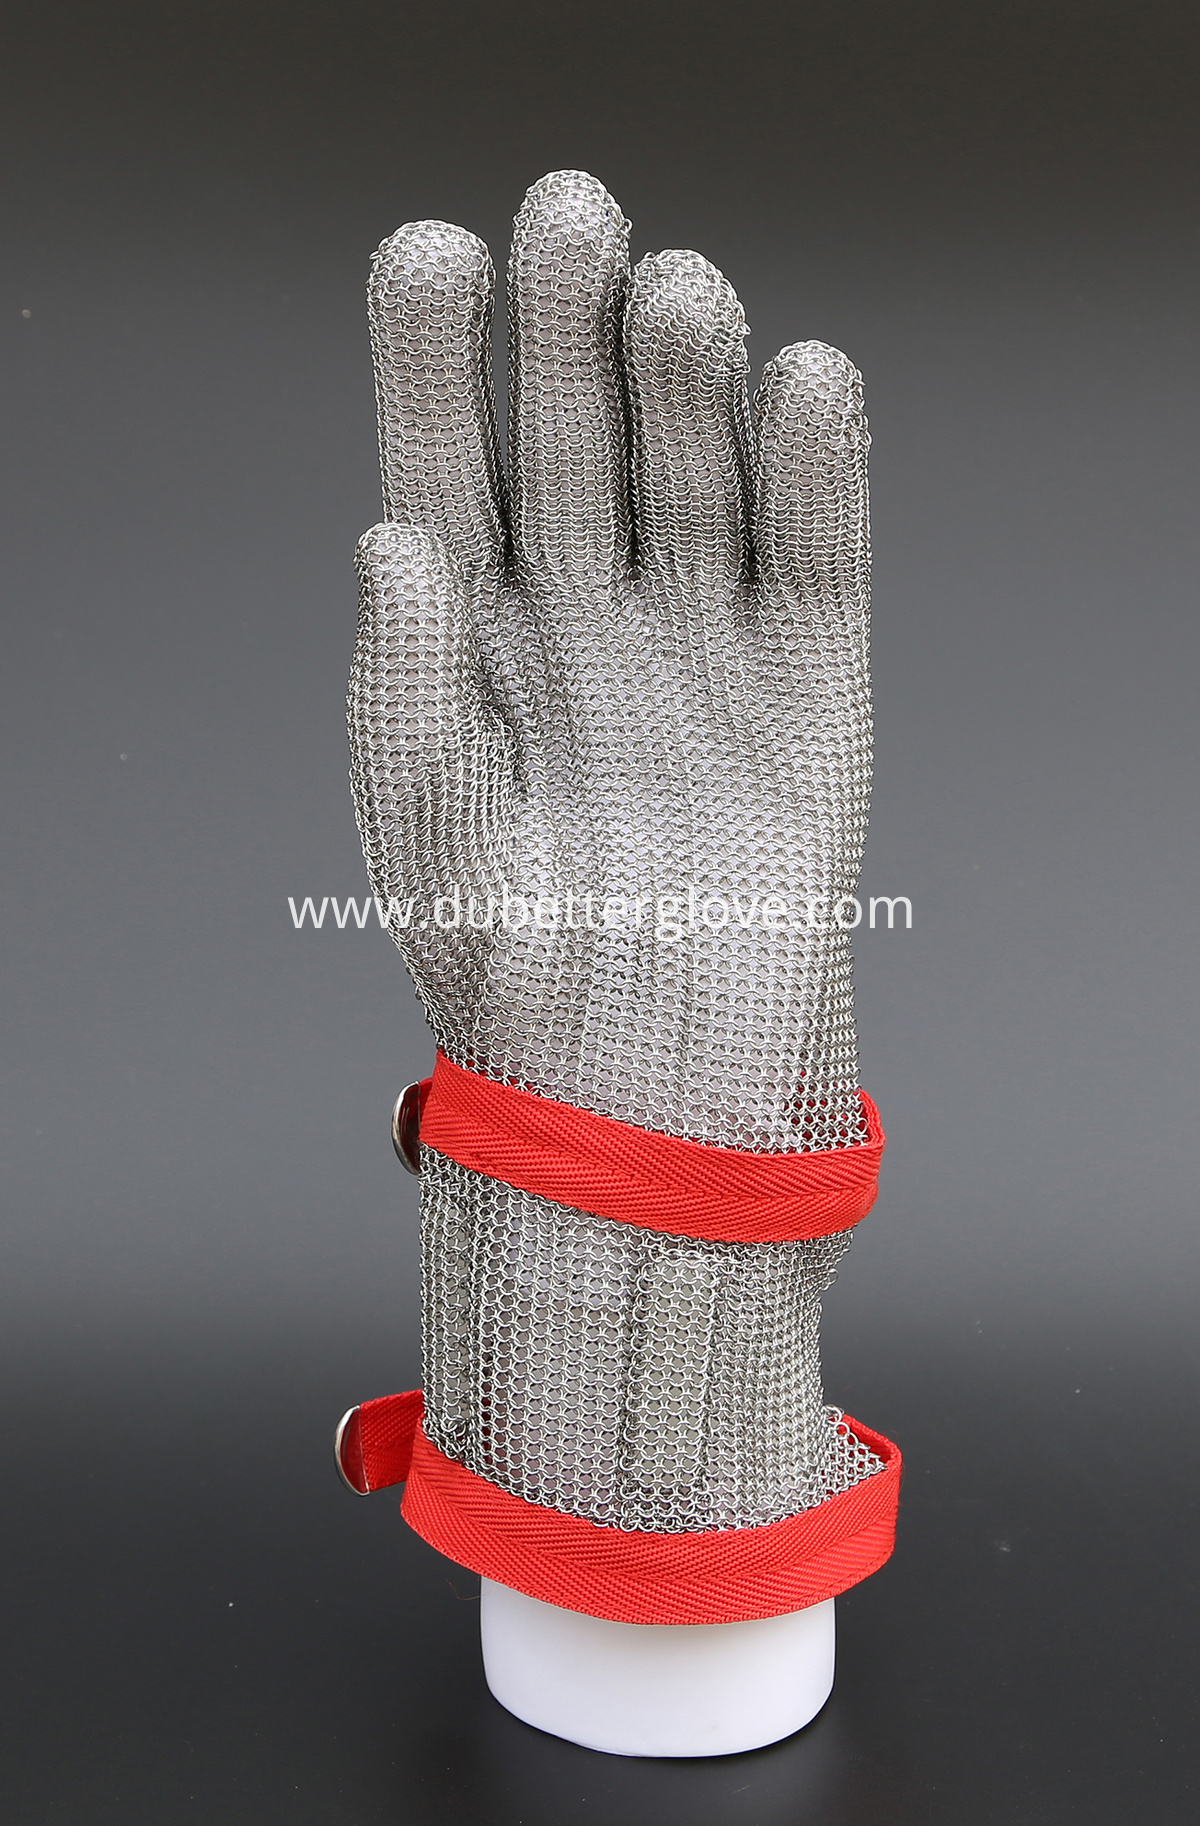 stainless steel meat processing gloves long cuff